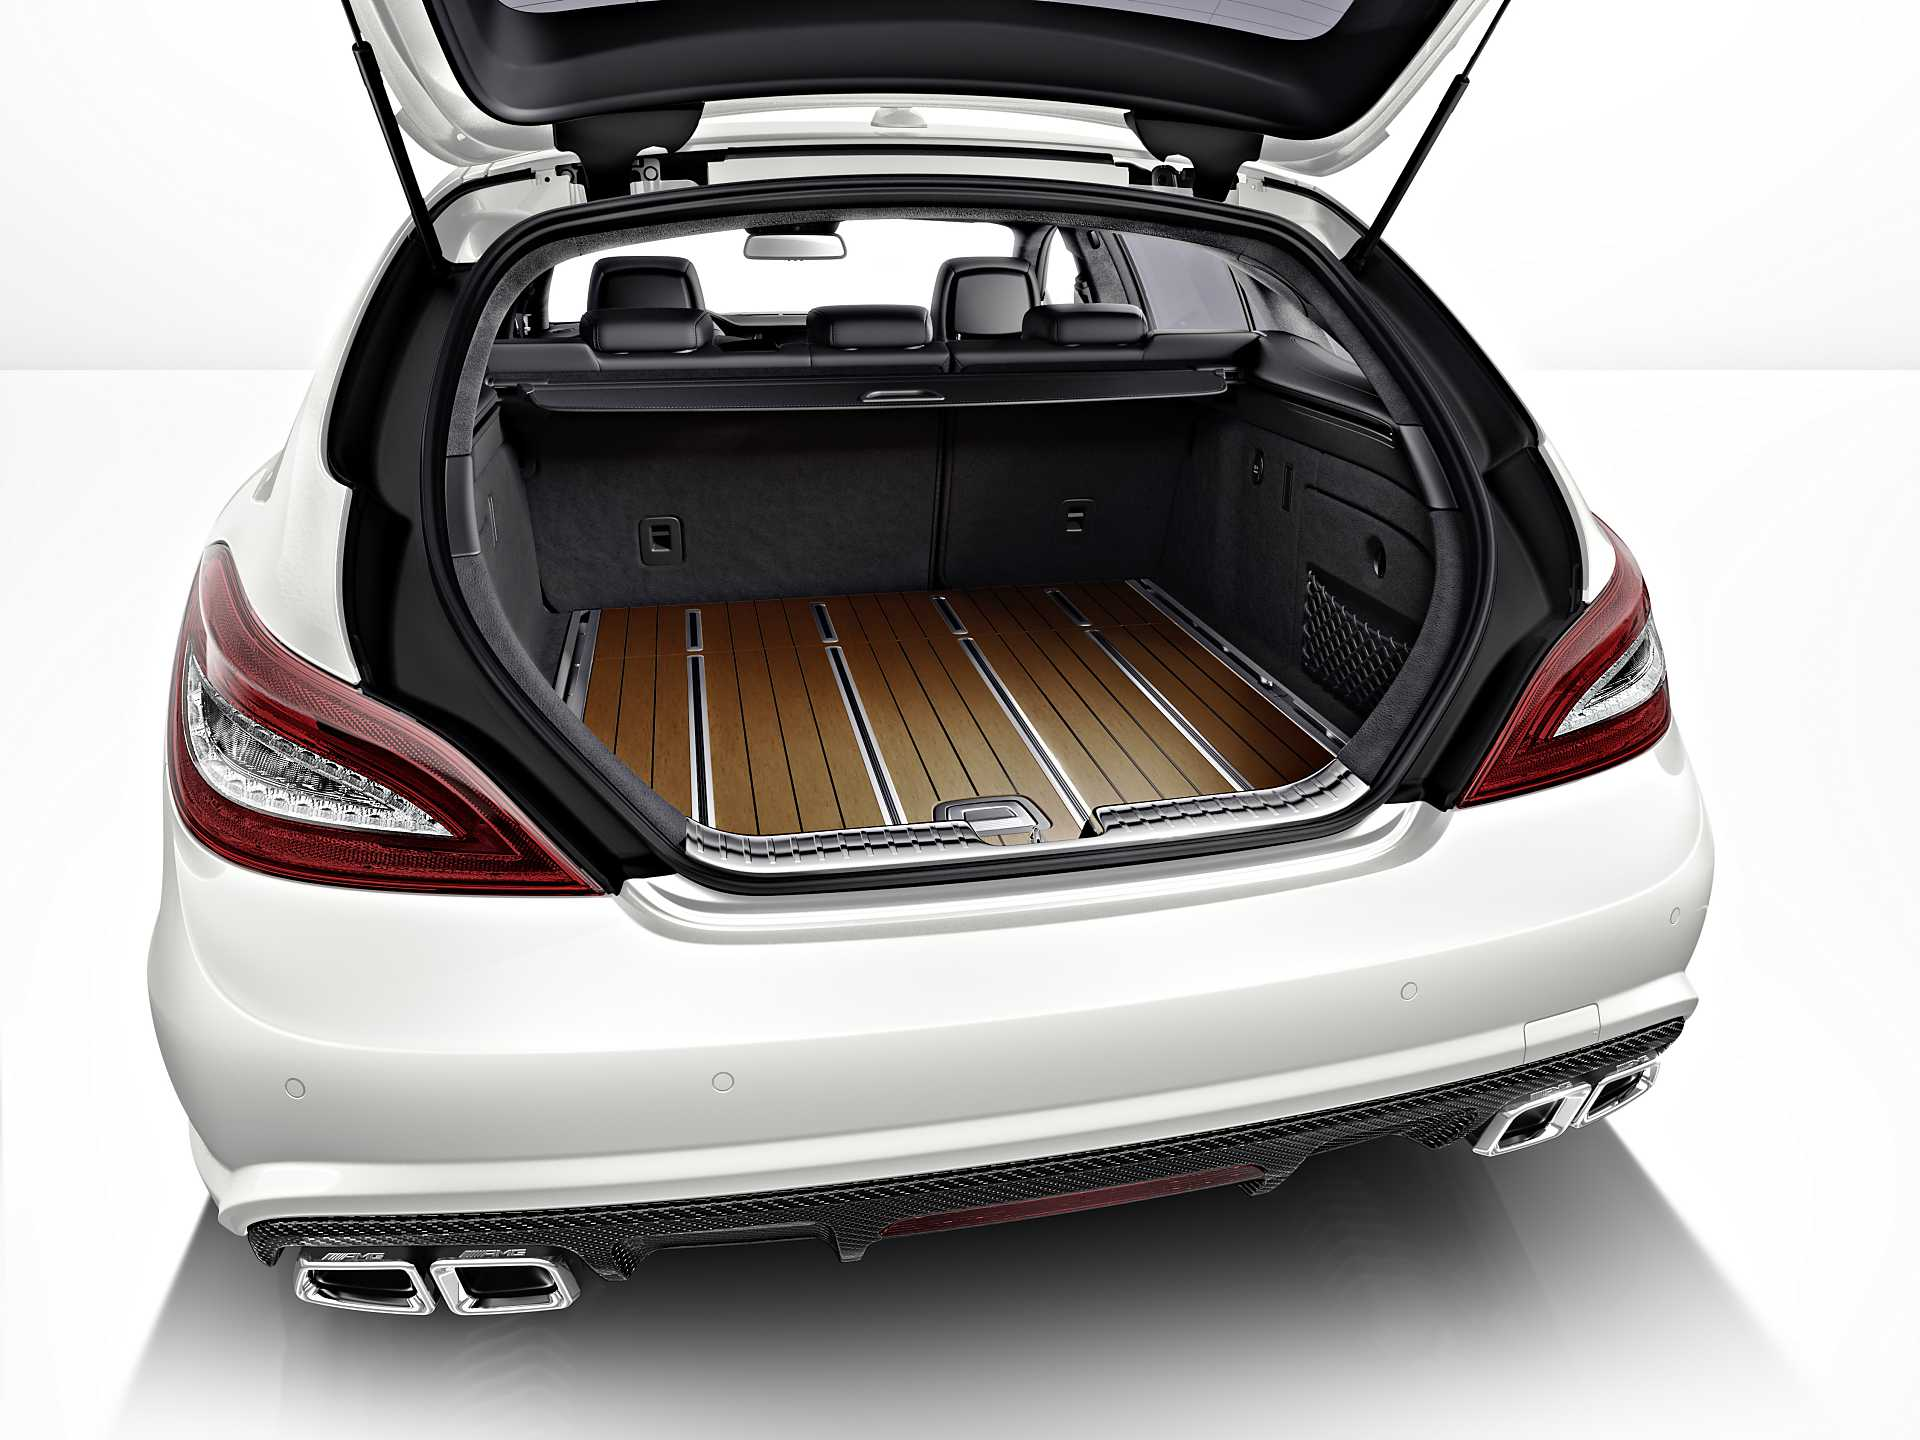 Mercedes Benz CLS 63 AMG Shooting Brake 525hp 2013